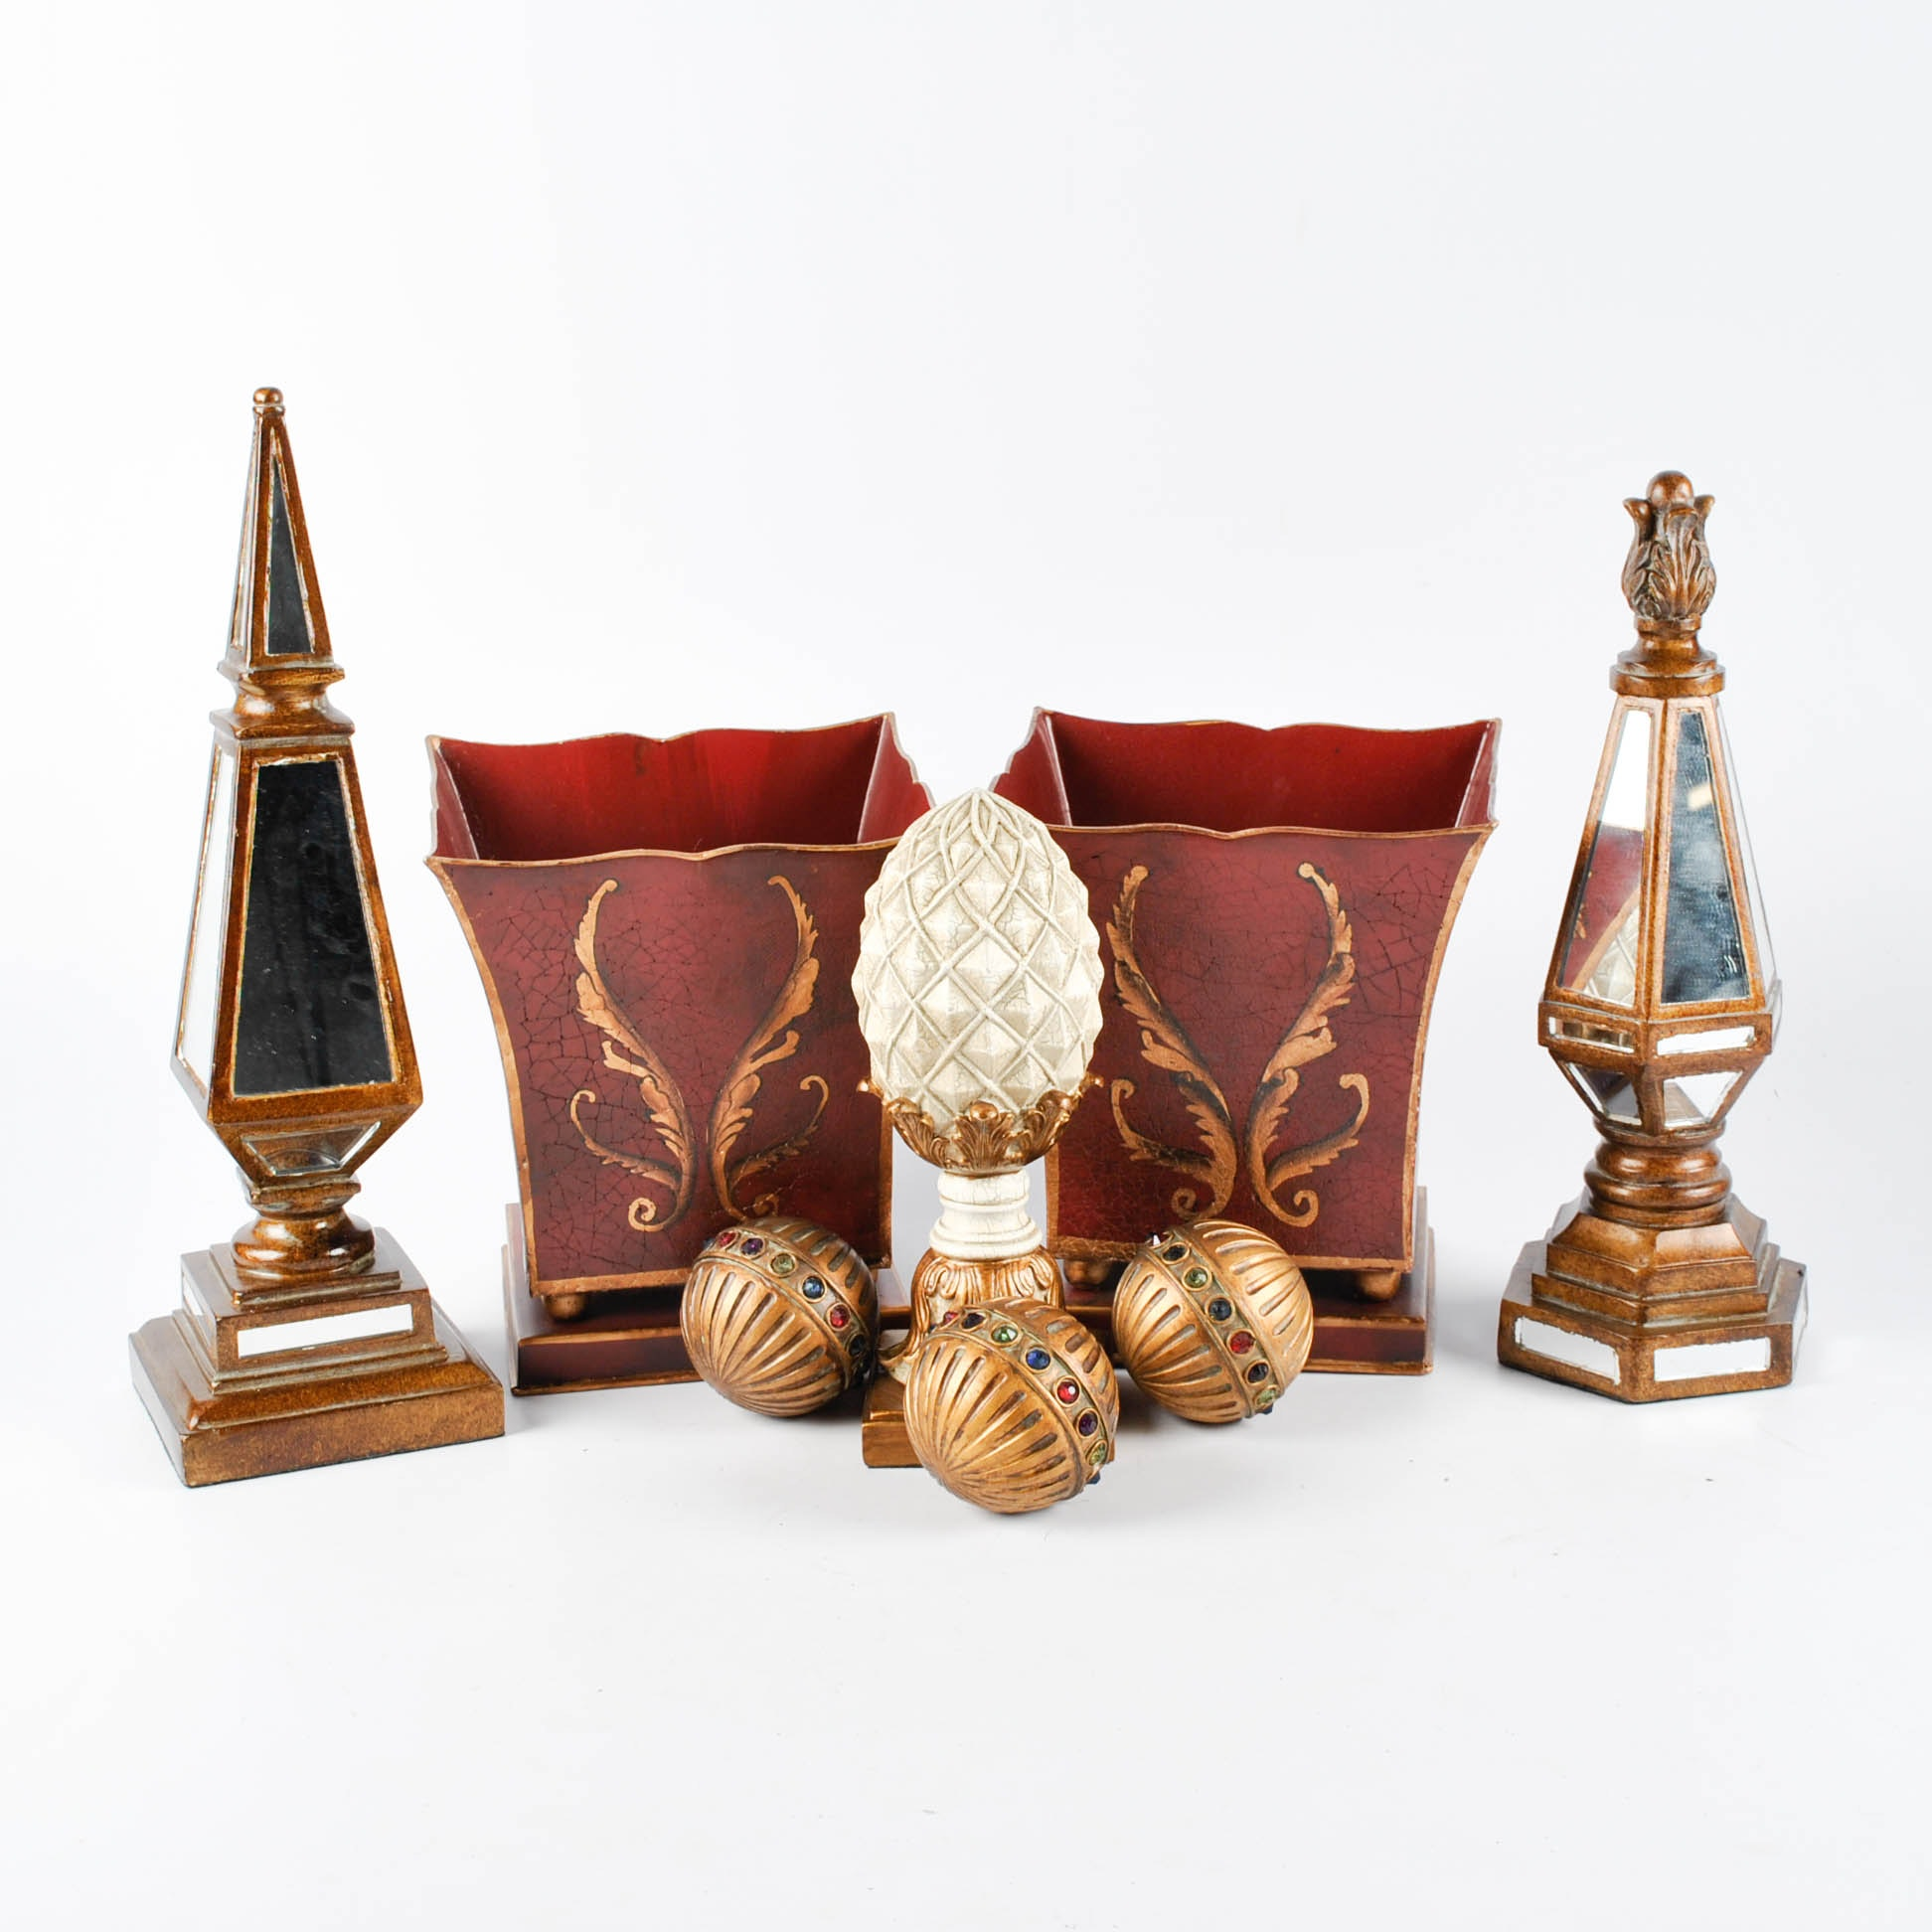 Decorative Mirrored Finials, Pineapple Finial, Orbs, and Cache Pots